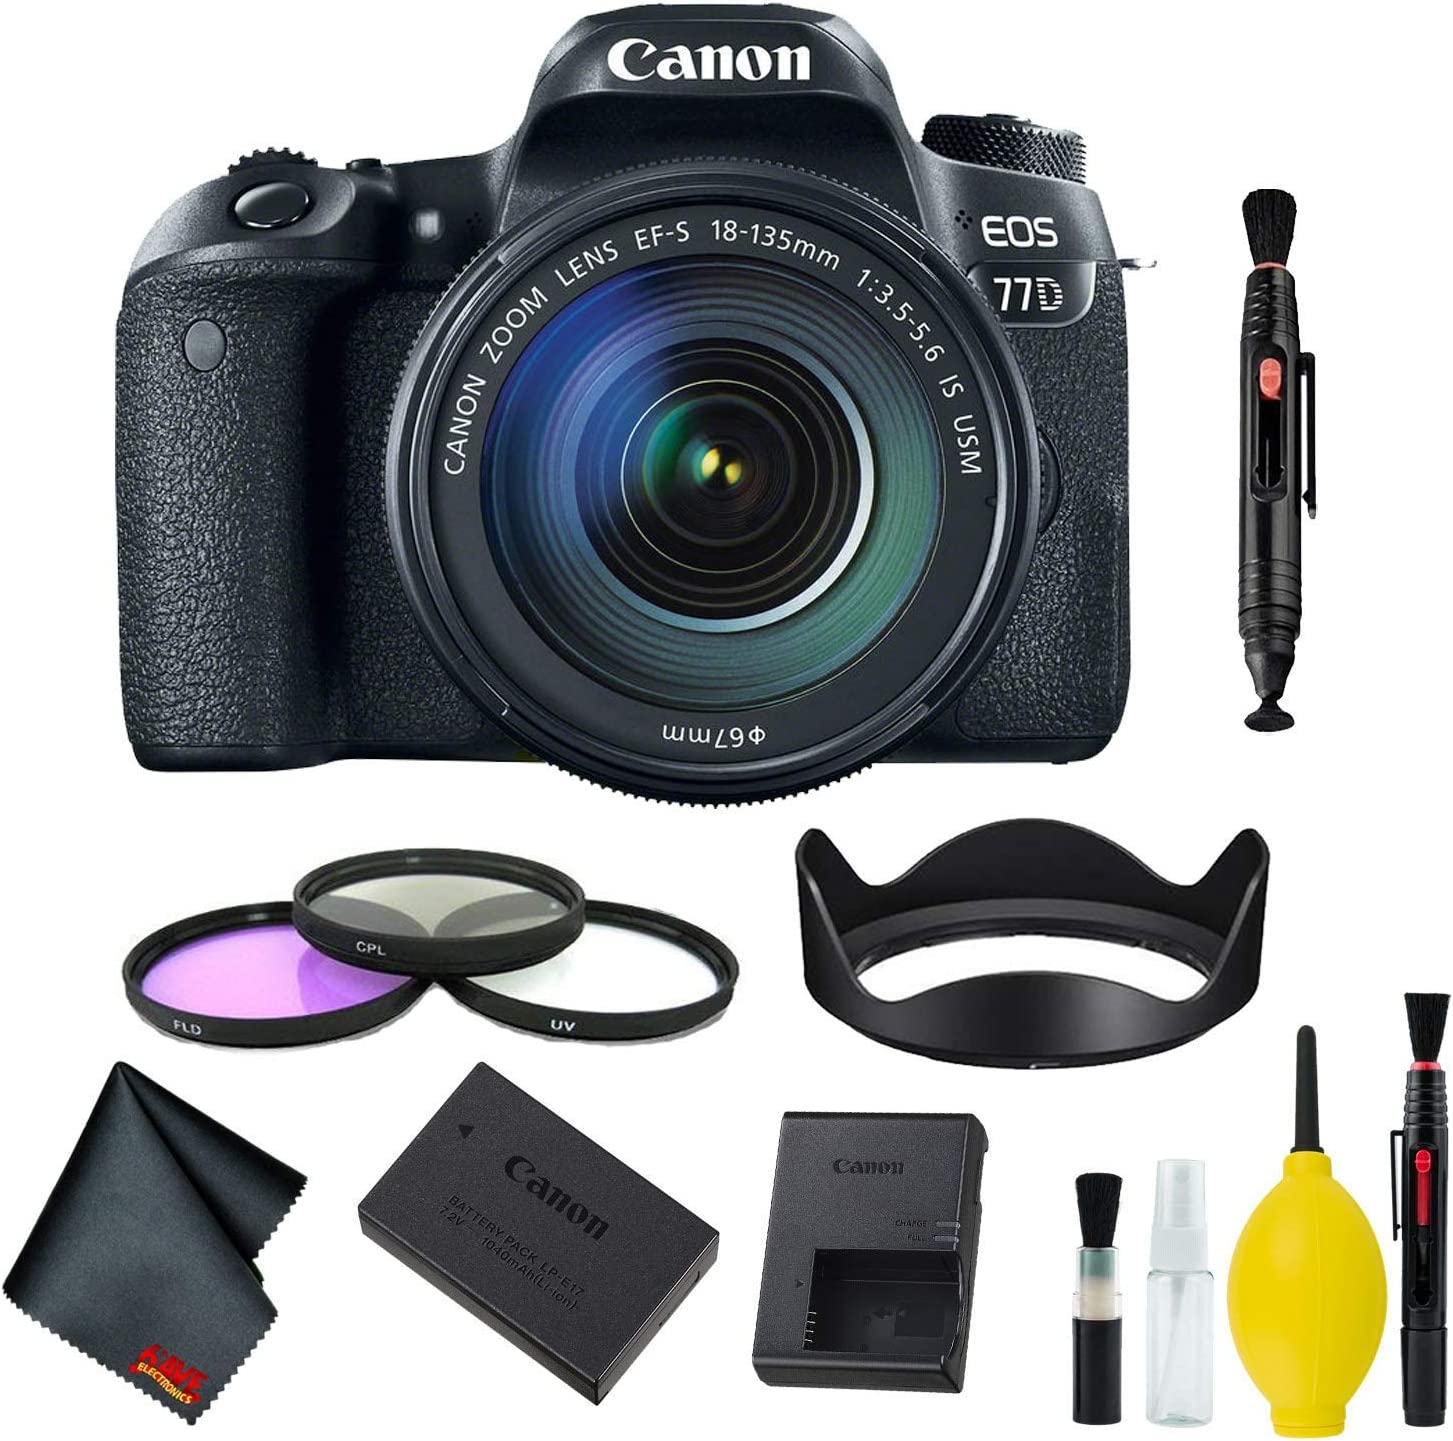 Canon EOS Max 54% OFF 77D DSLR Camera with Lens Filter 18-135mm USM New products world's highest quality popular Kit